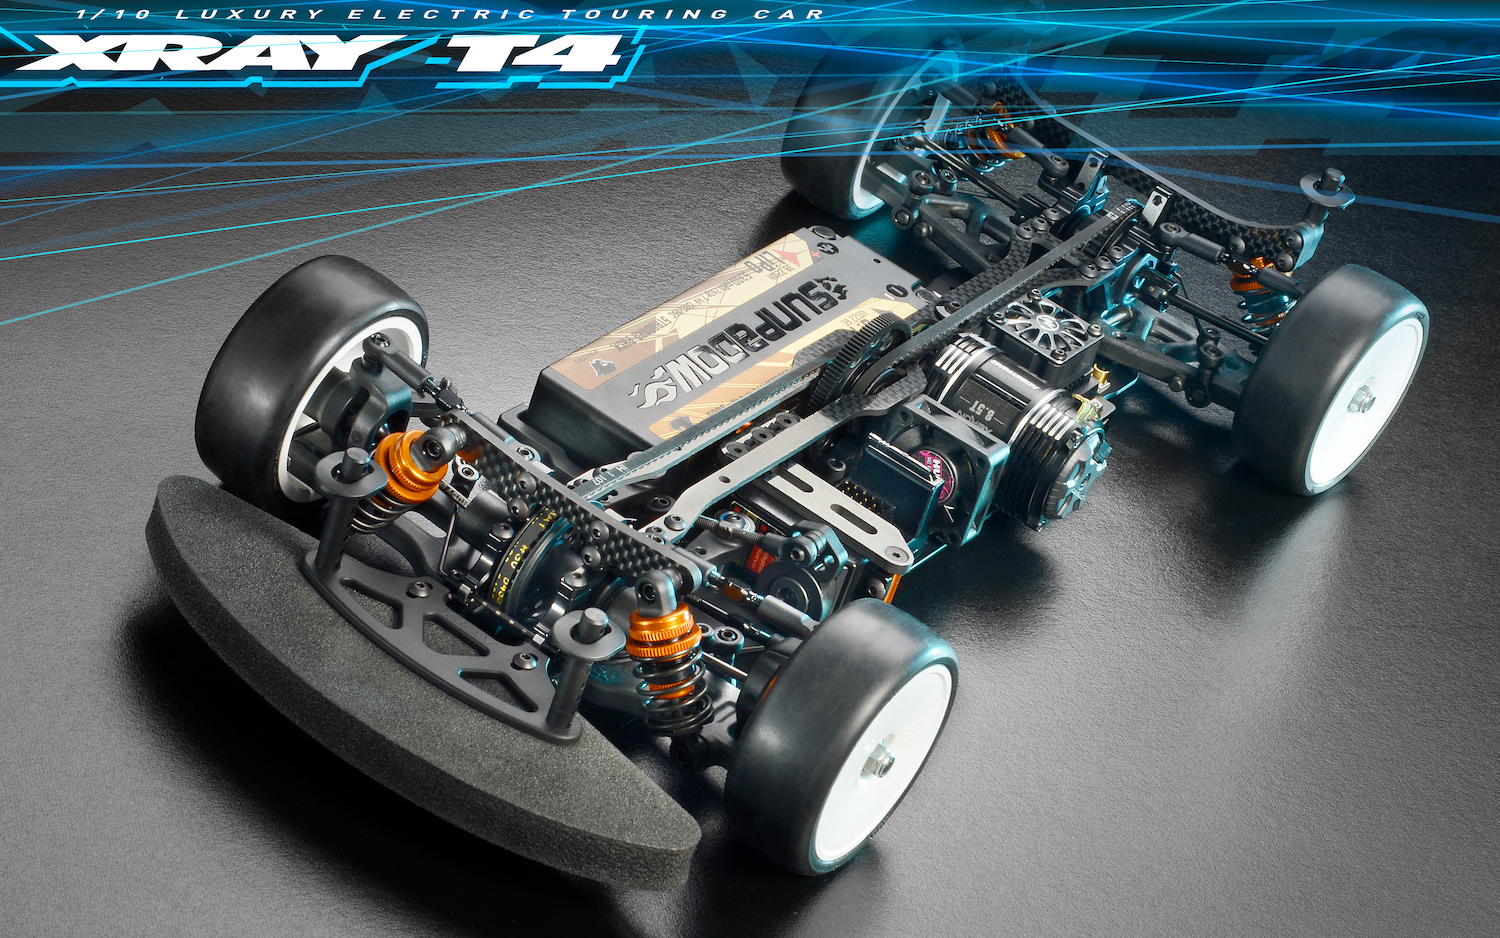 XRAY T4 2020 Specs 1/10 Luxury Electric Touring Car - Graphite Edition + FREE XRAY T-SHIRT 300026